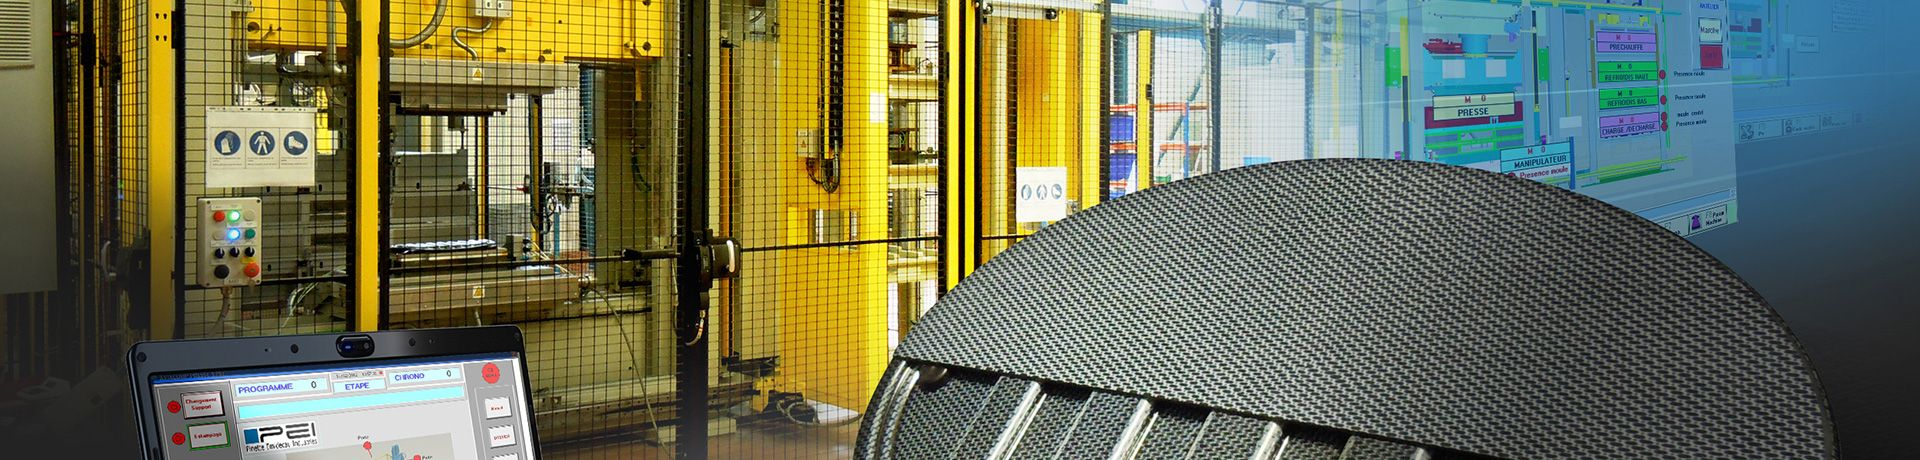 Pinette P.E.I. is a historical supplier of turnkey manufacturing systems dedicated to thermoplastics stamping including PPS, PEKK , PEEK and more.